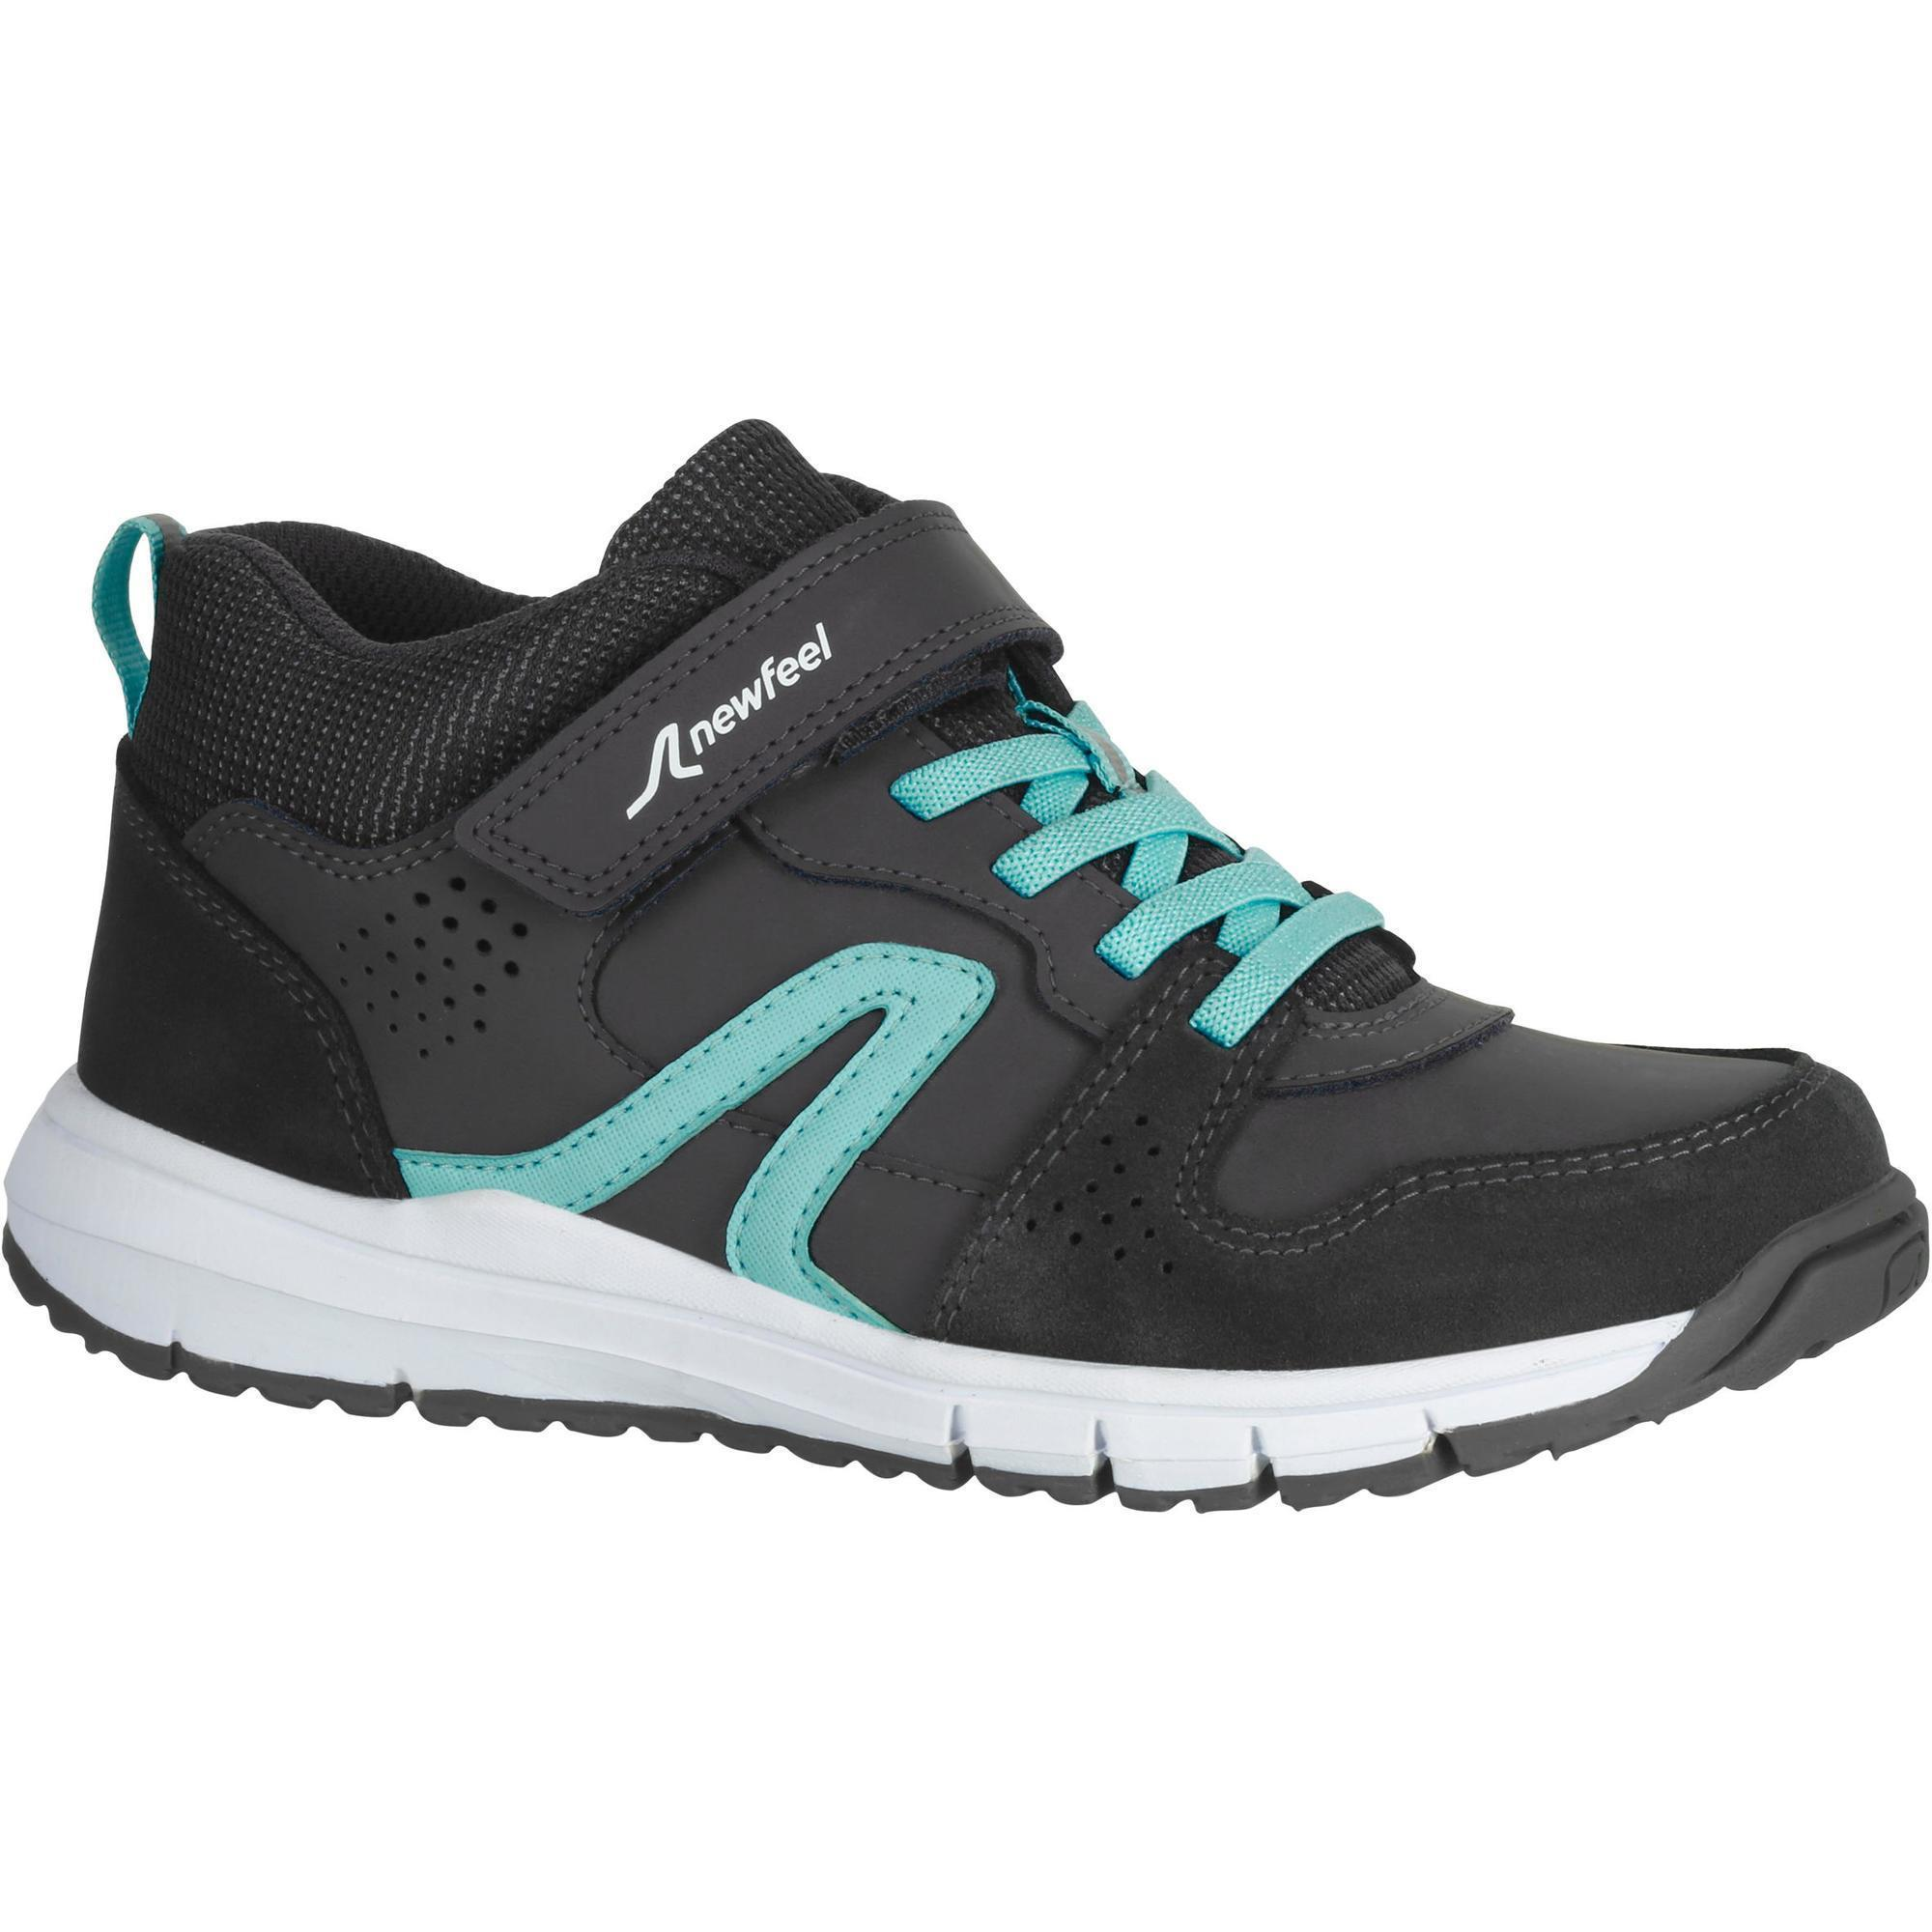 chaussures marche sportive enfant protect 560 gris turquoise newfeel. Black Bedroom Furniture Sets. Home Design Ideas